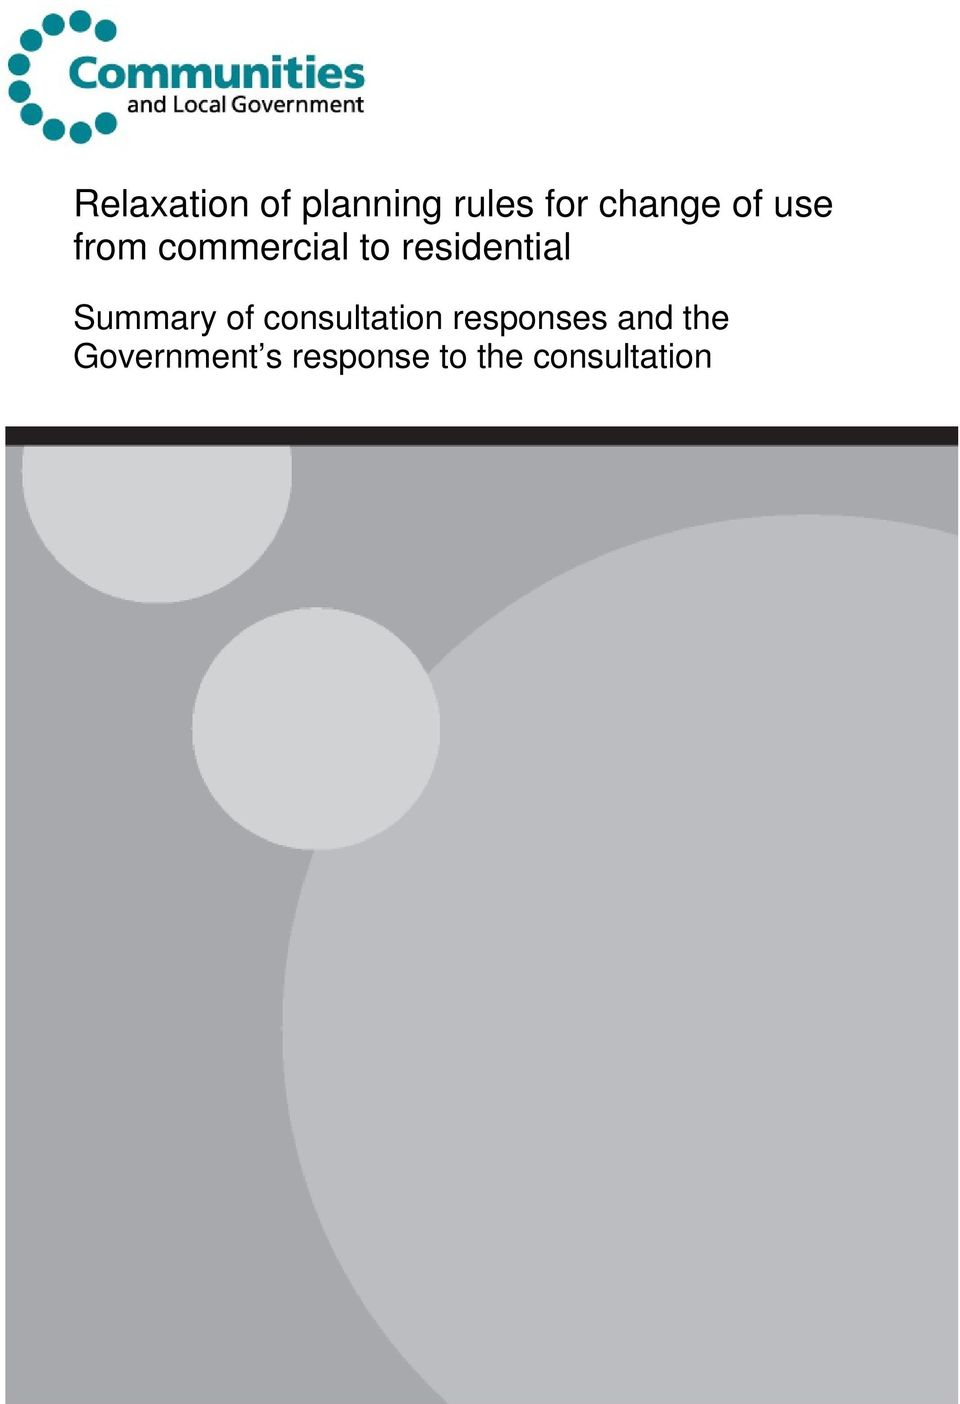 Summary of consultation responses and